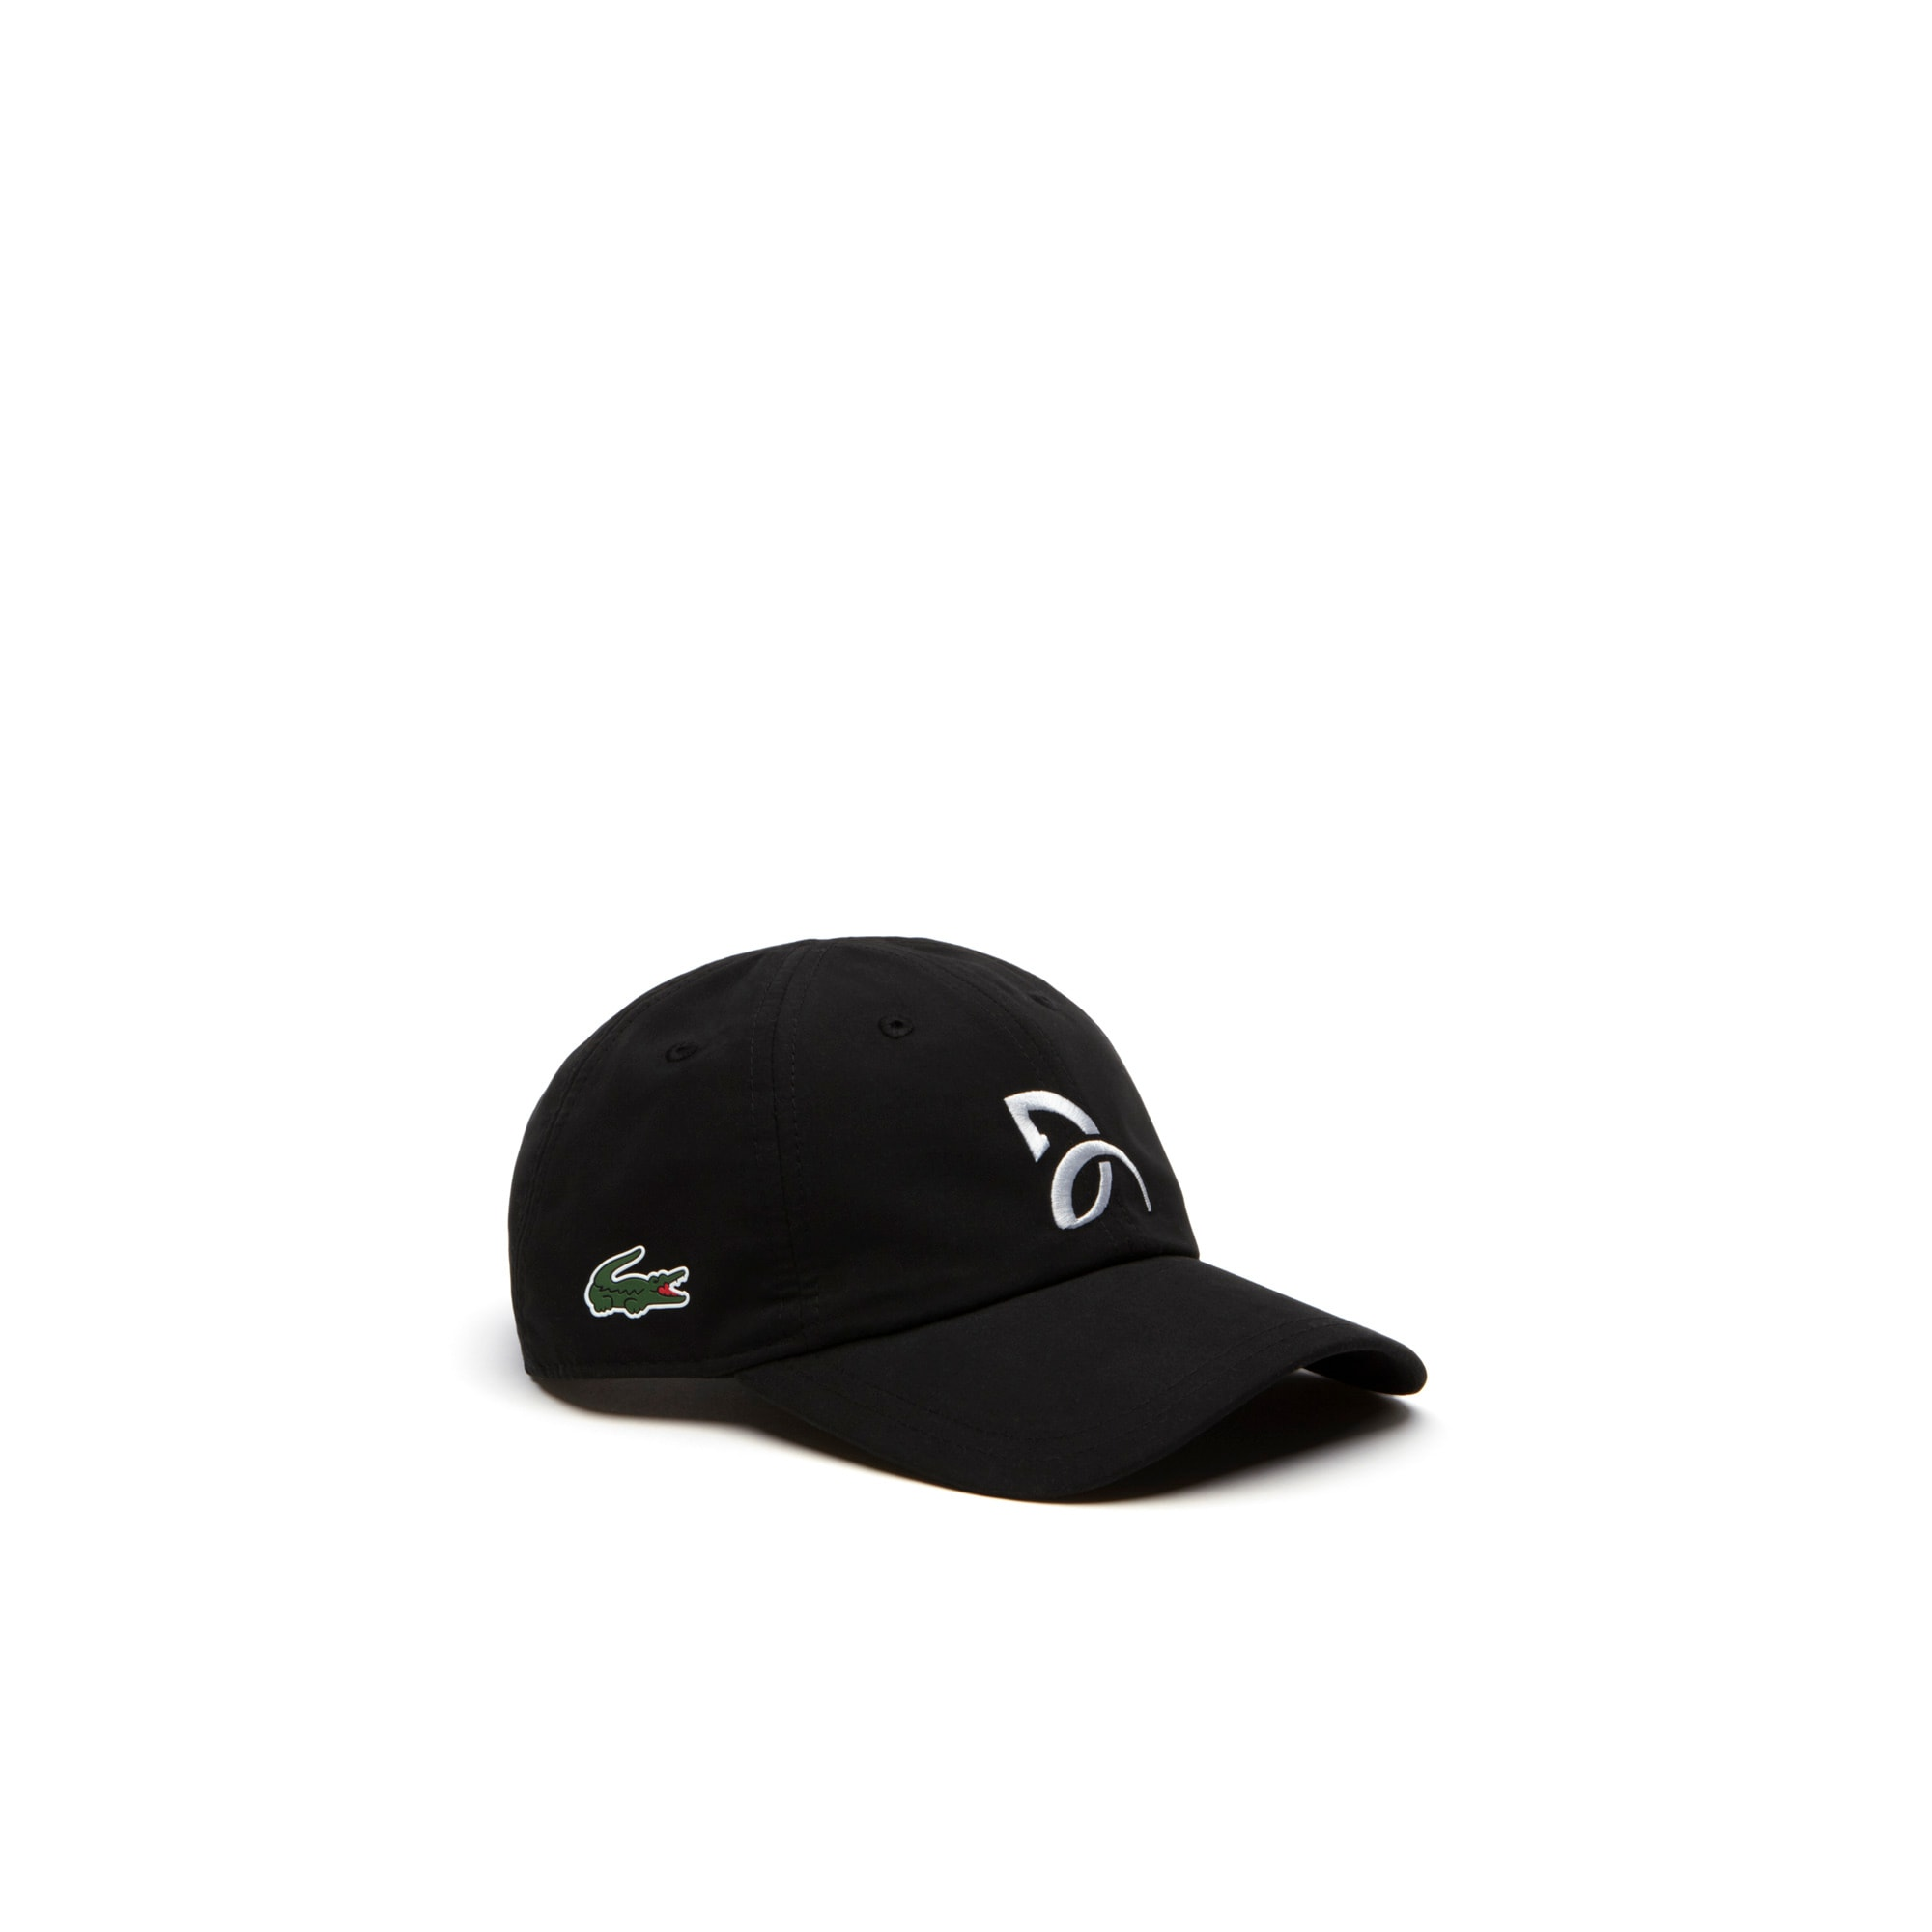 Men s Caps   Hats  dda7bd4373a